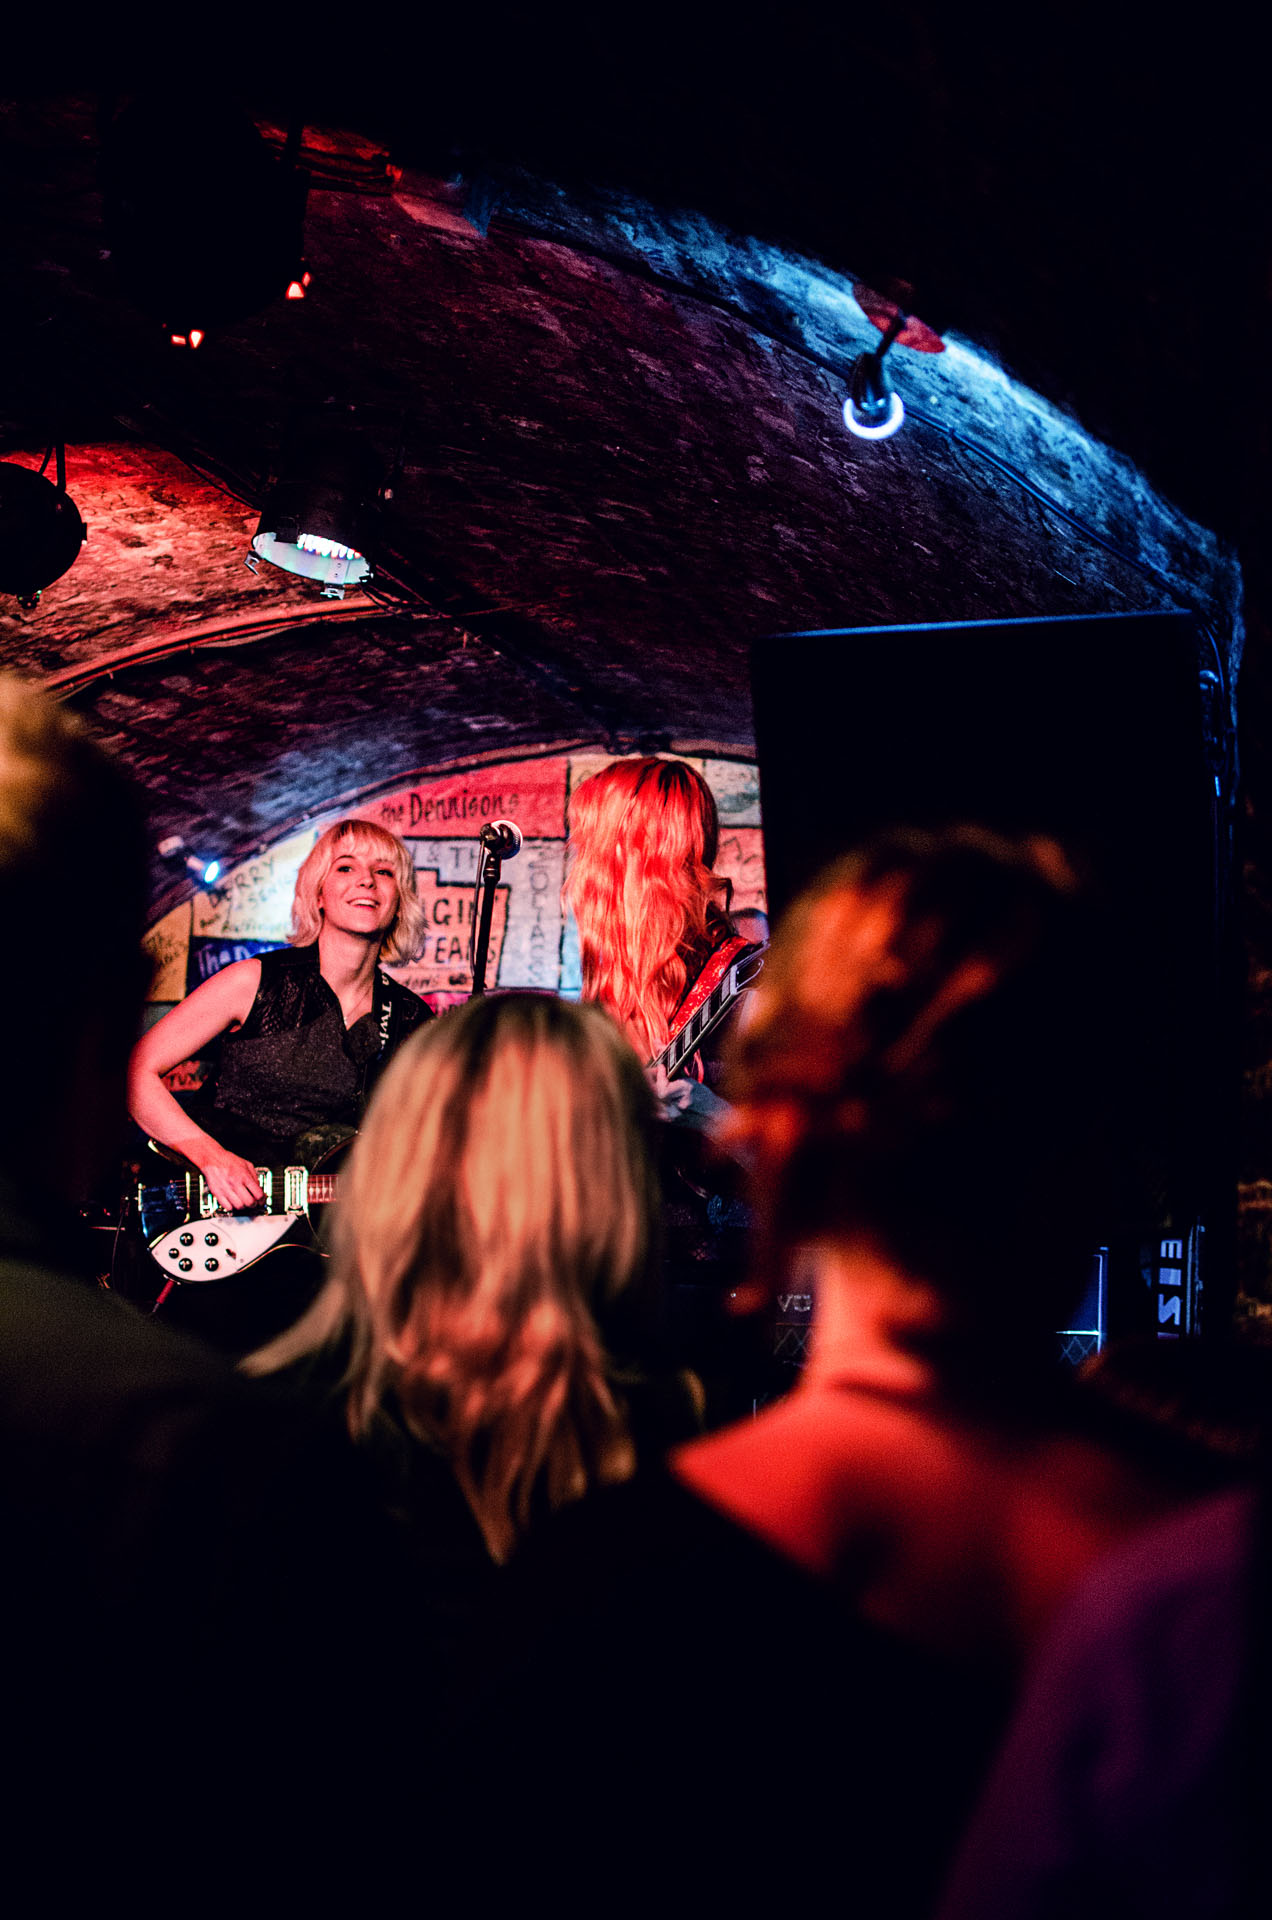 Cheap seats' view of the MonaLisa Twins at the Cavern Club, Liverpool